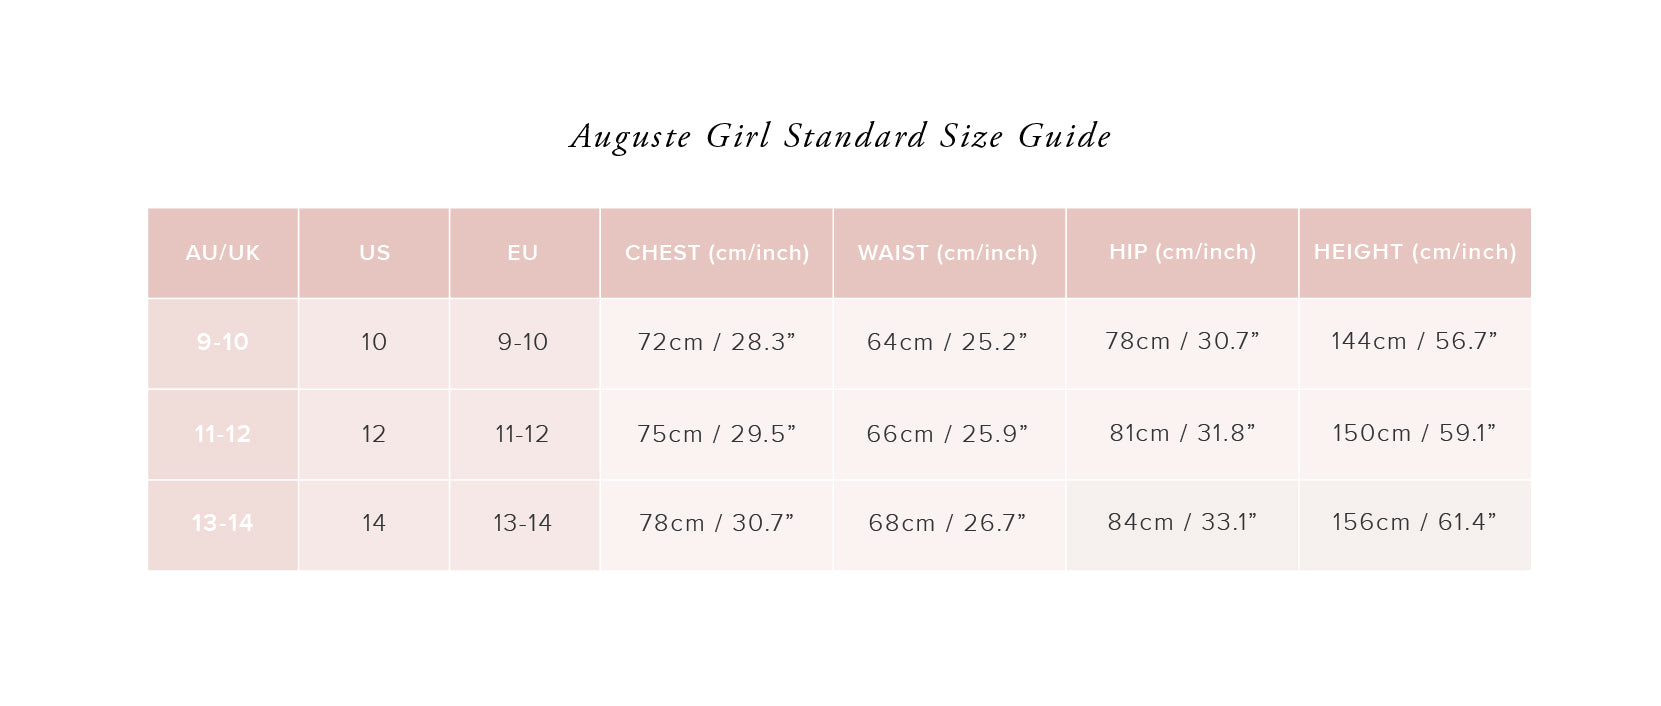 Auguste Girl Size Guide - Auguste The Label